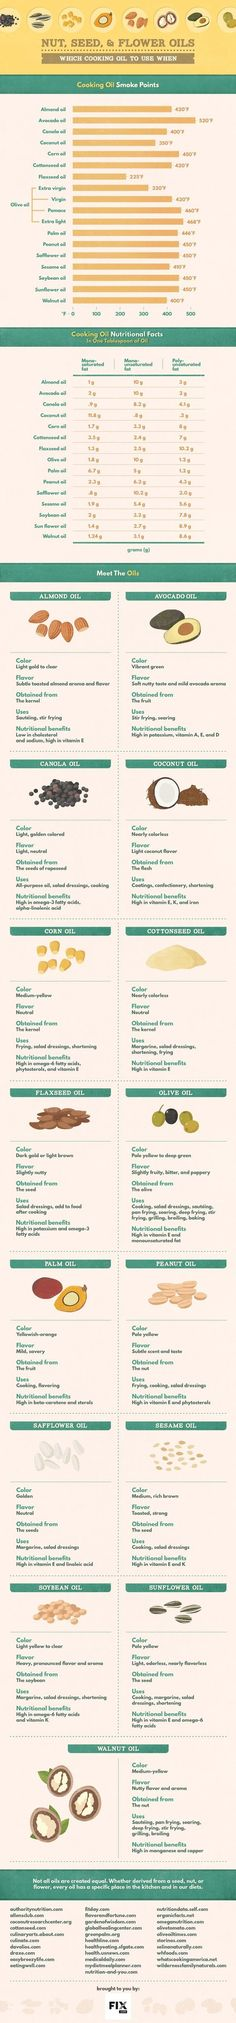 For trying new, healthier cooking oils. | 17 Charts To Help You Eat Healthy